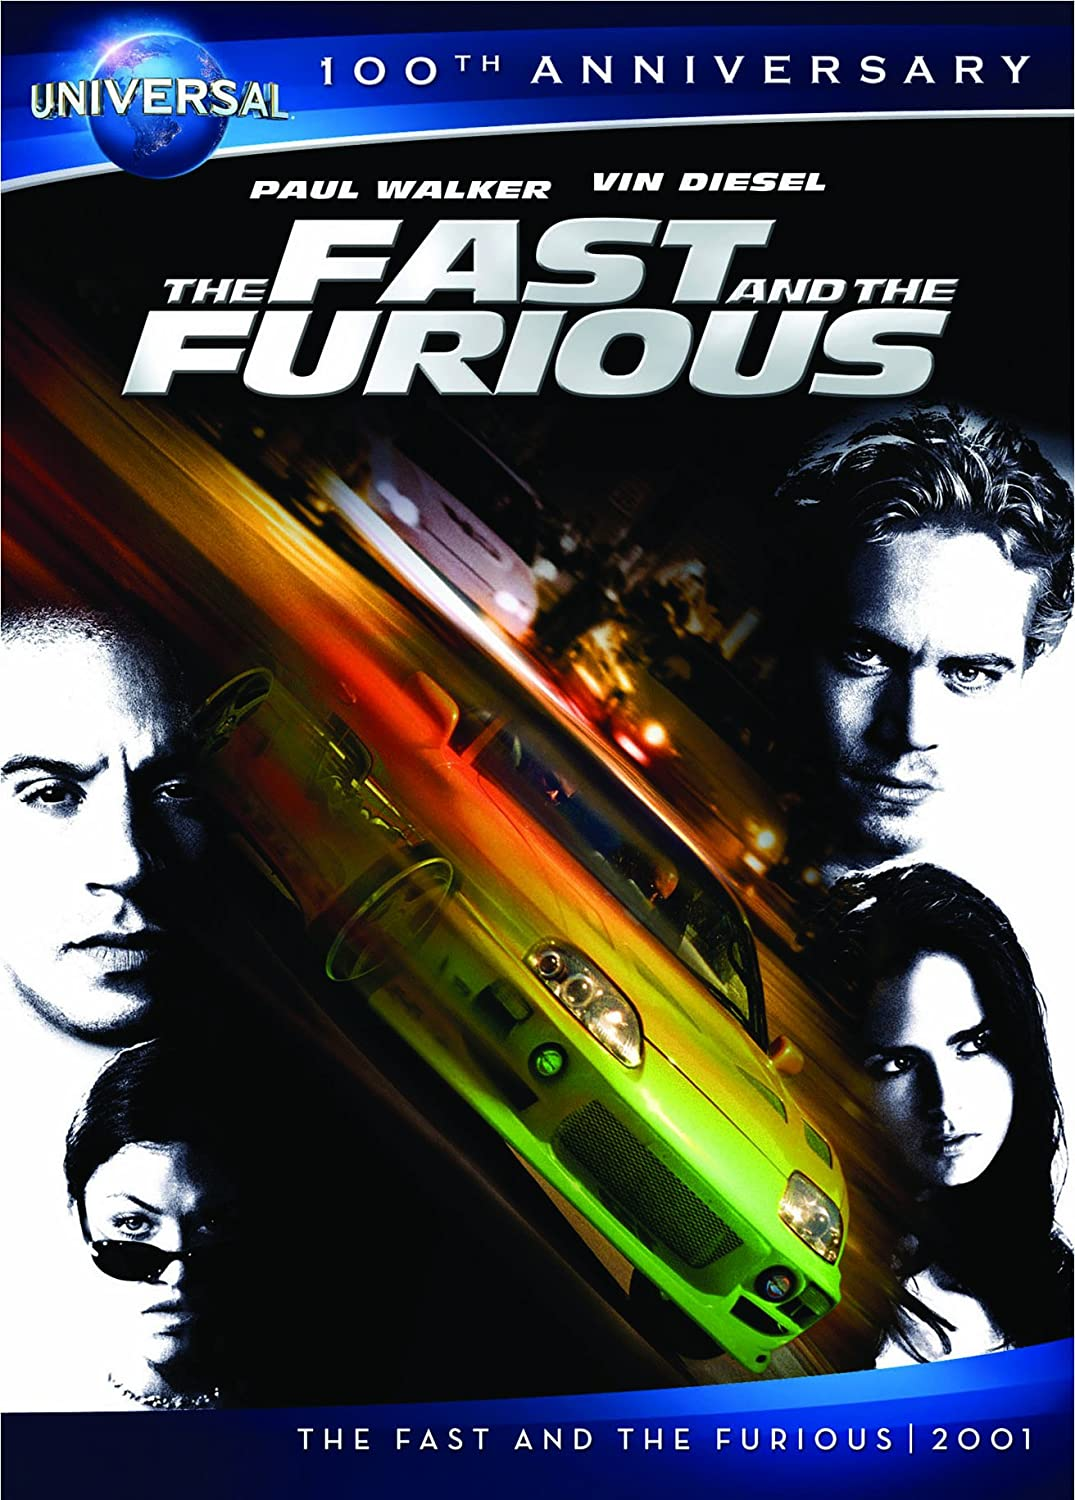 Amazon.com: The Fast and the Furious [DVD + Digital Copy] (Universal's  100th Anniversary): Vin Diesel, Paul Walker, Michelle Rodriguez, Jordana  Brewster, ...